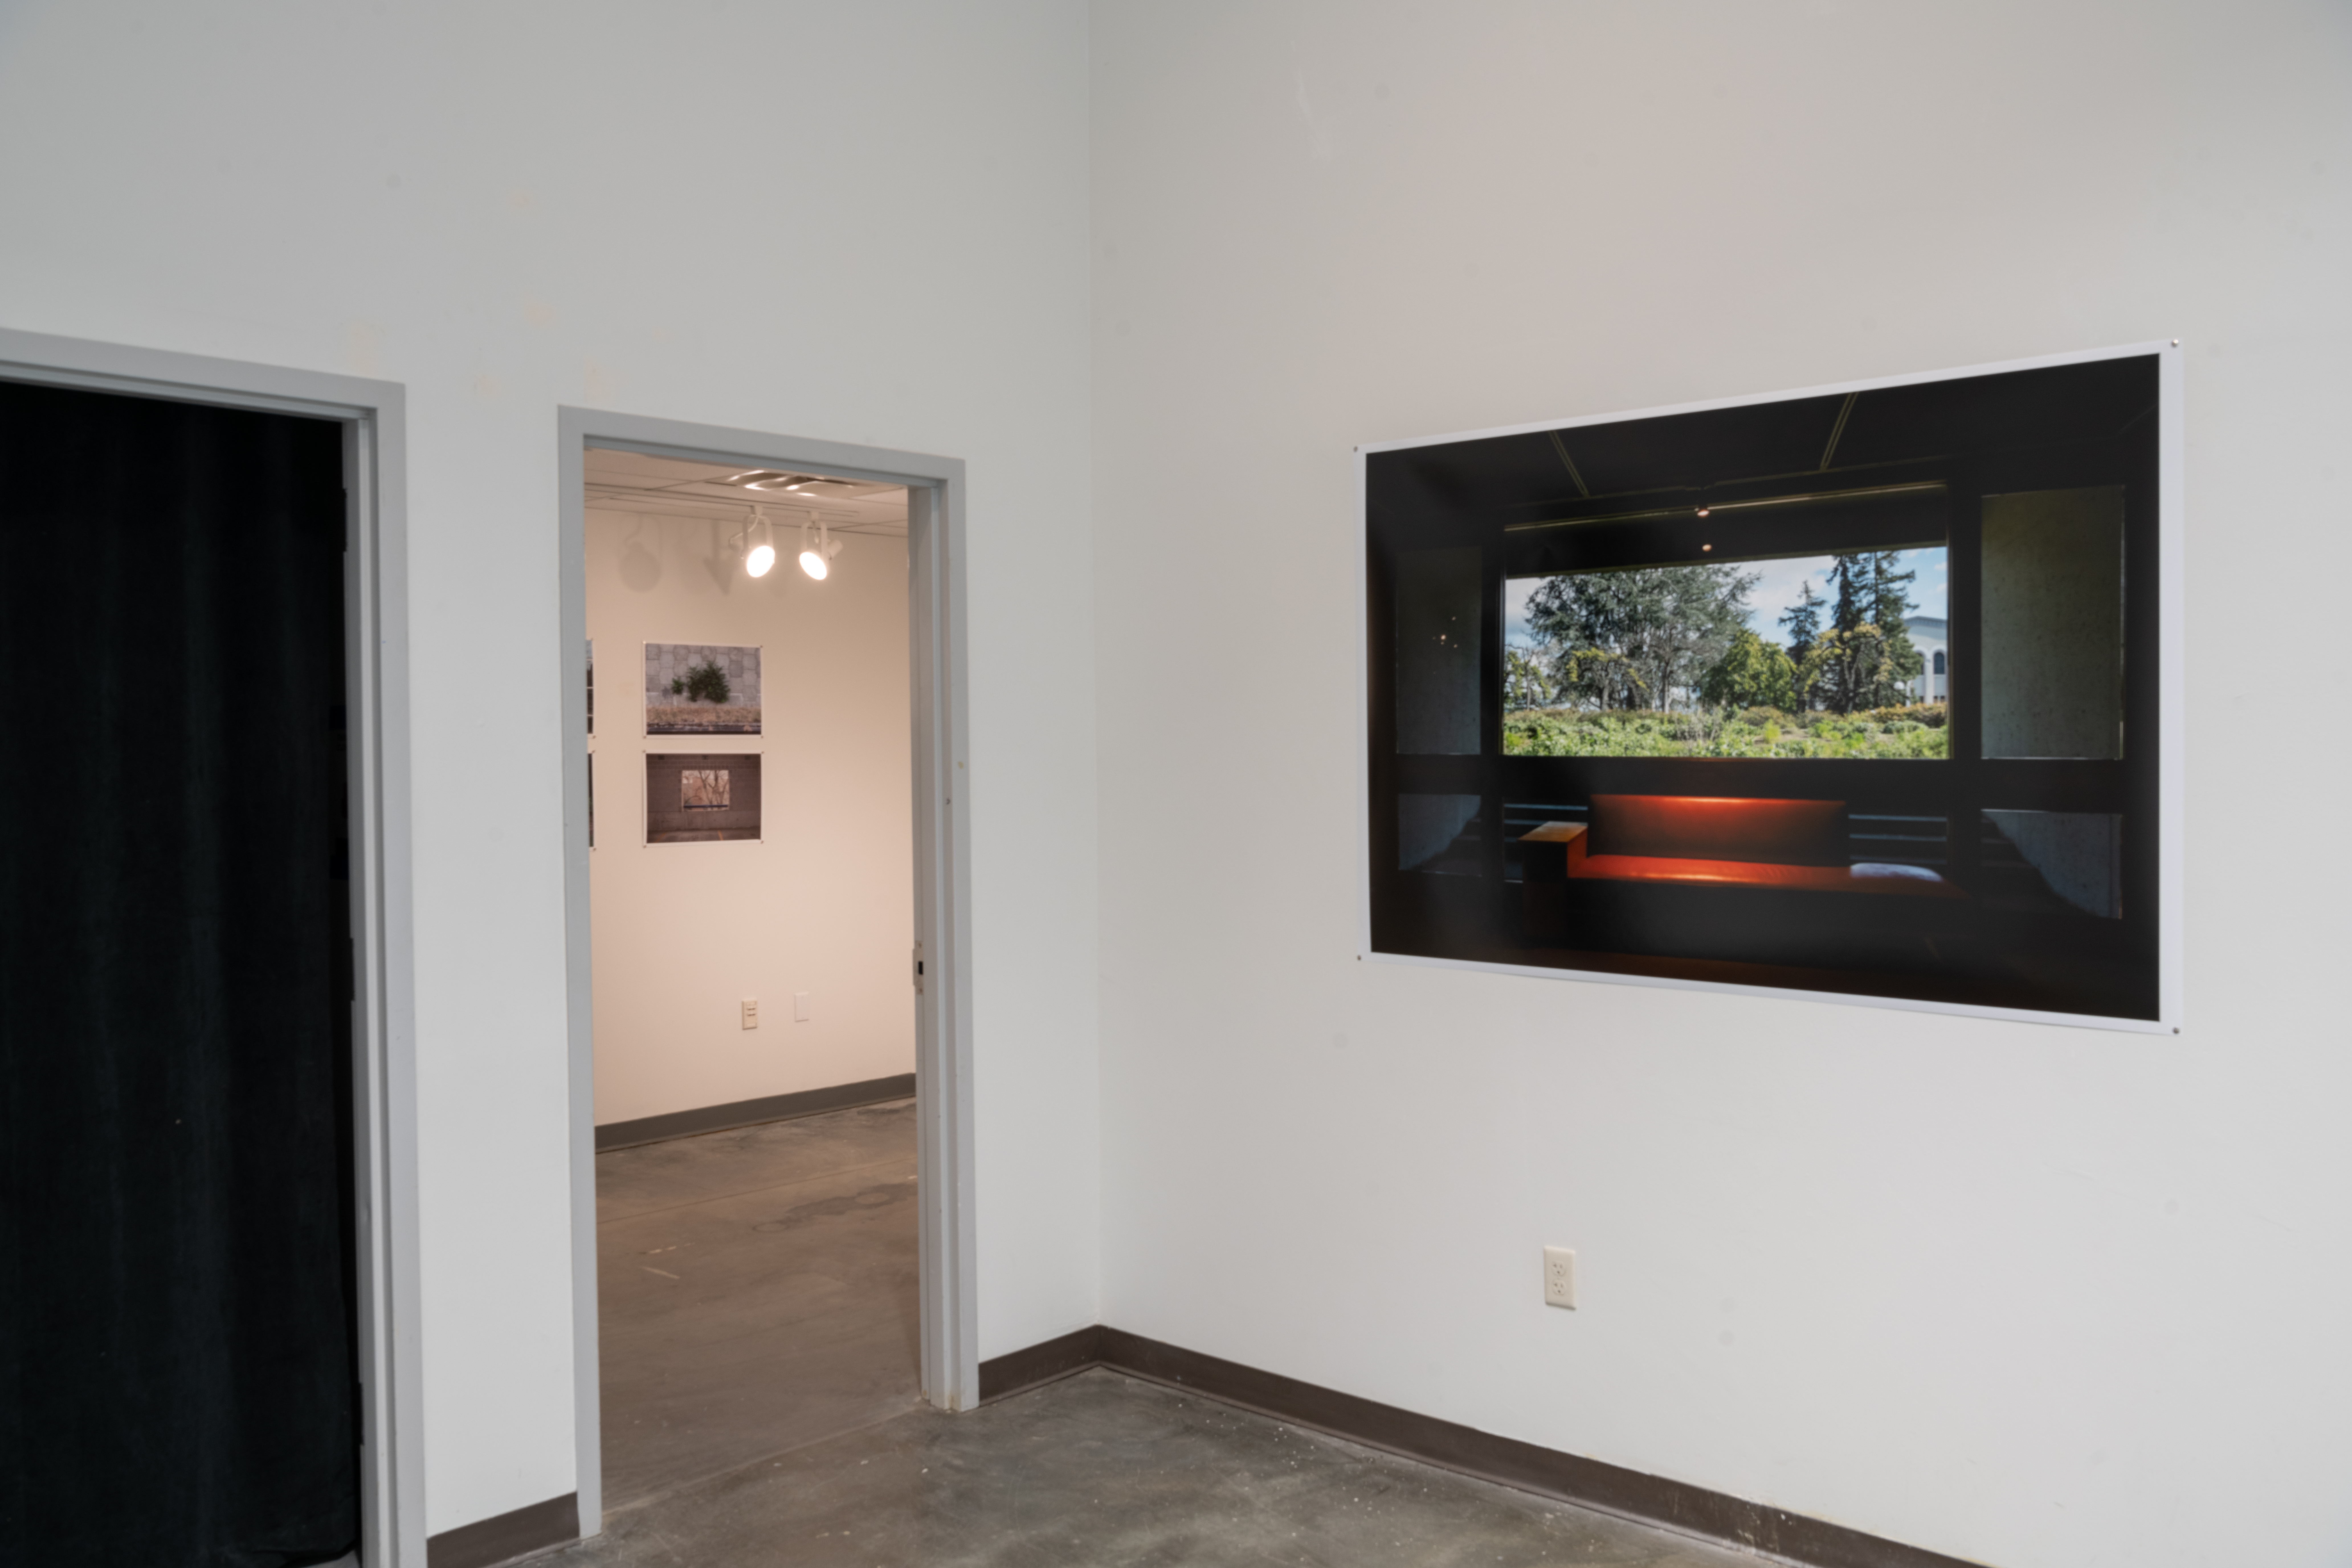 View of Zhang photo installation, right - photo of red leather sofa in front of projection of trees, and left - a doorway with multiple photos installed on the gallery wall.